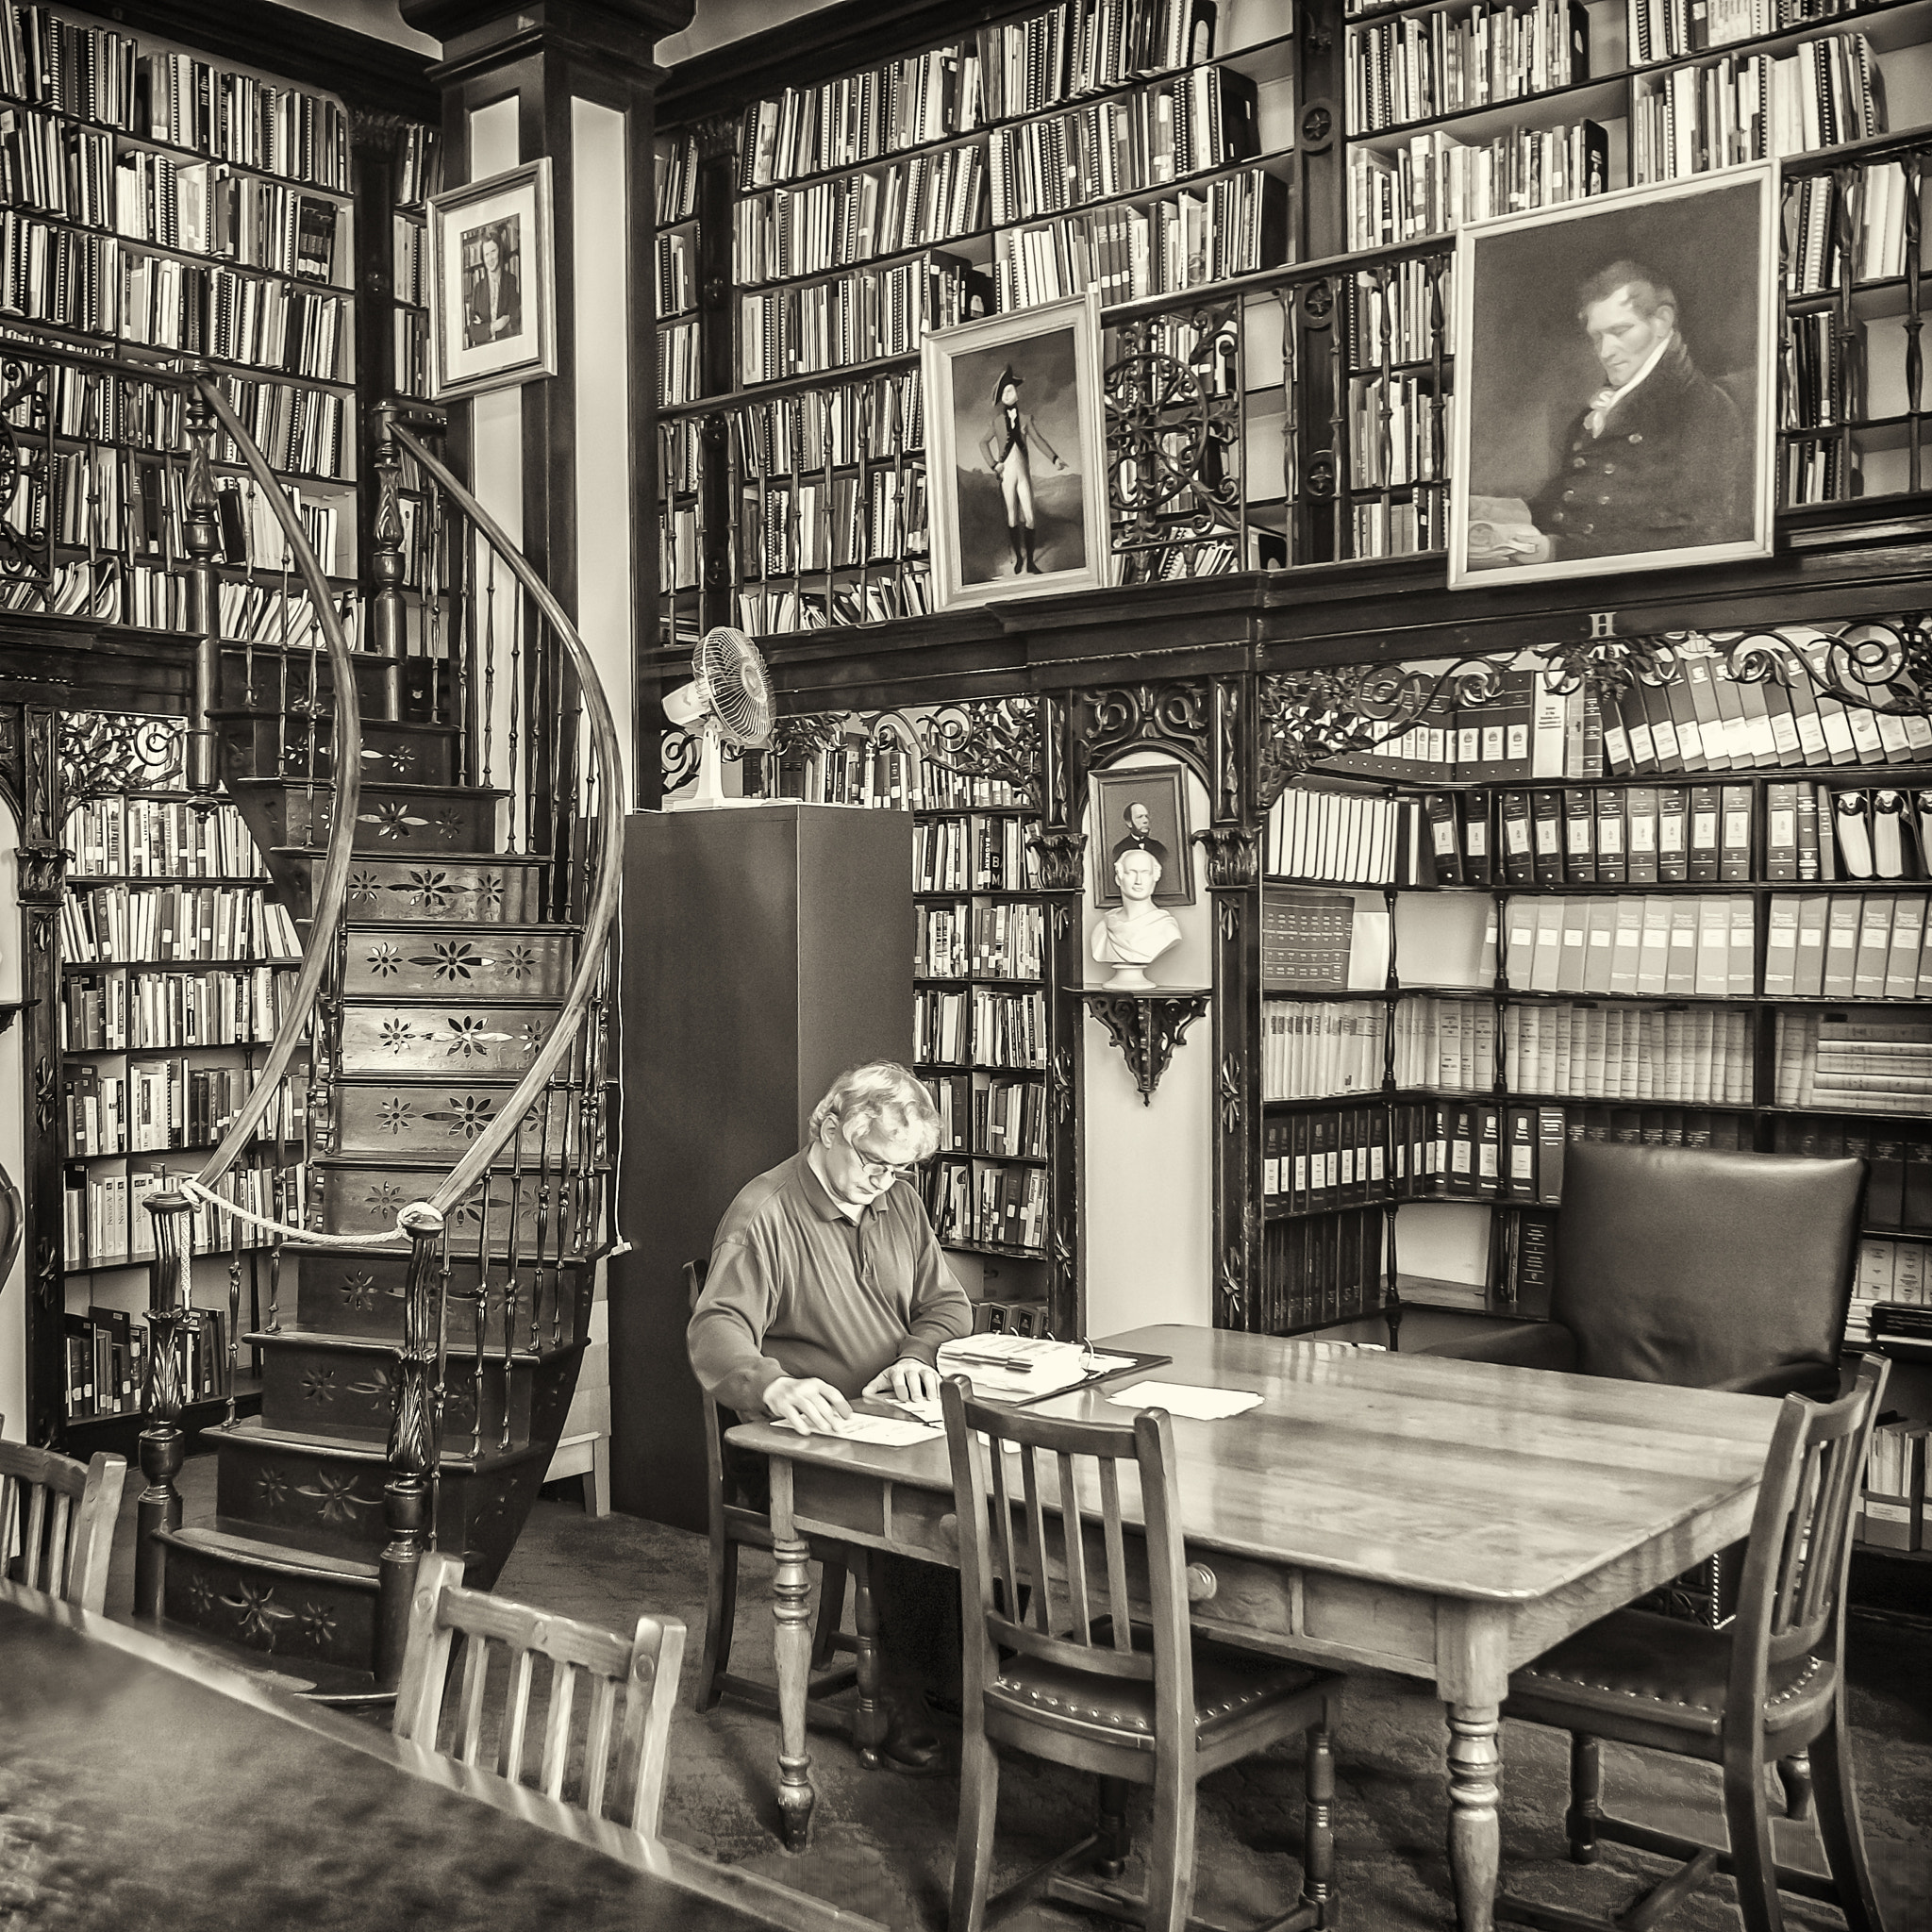 Photograph The Reader / Le lecteur by Philip Rice on 500px